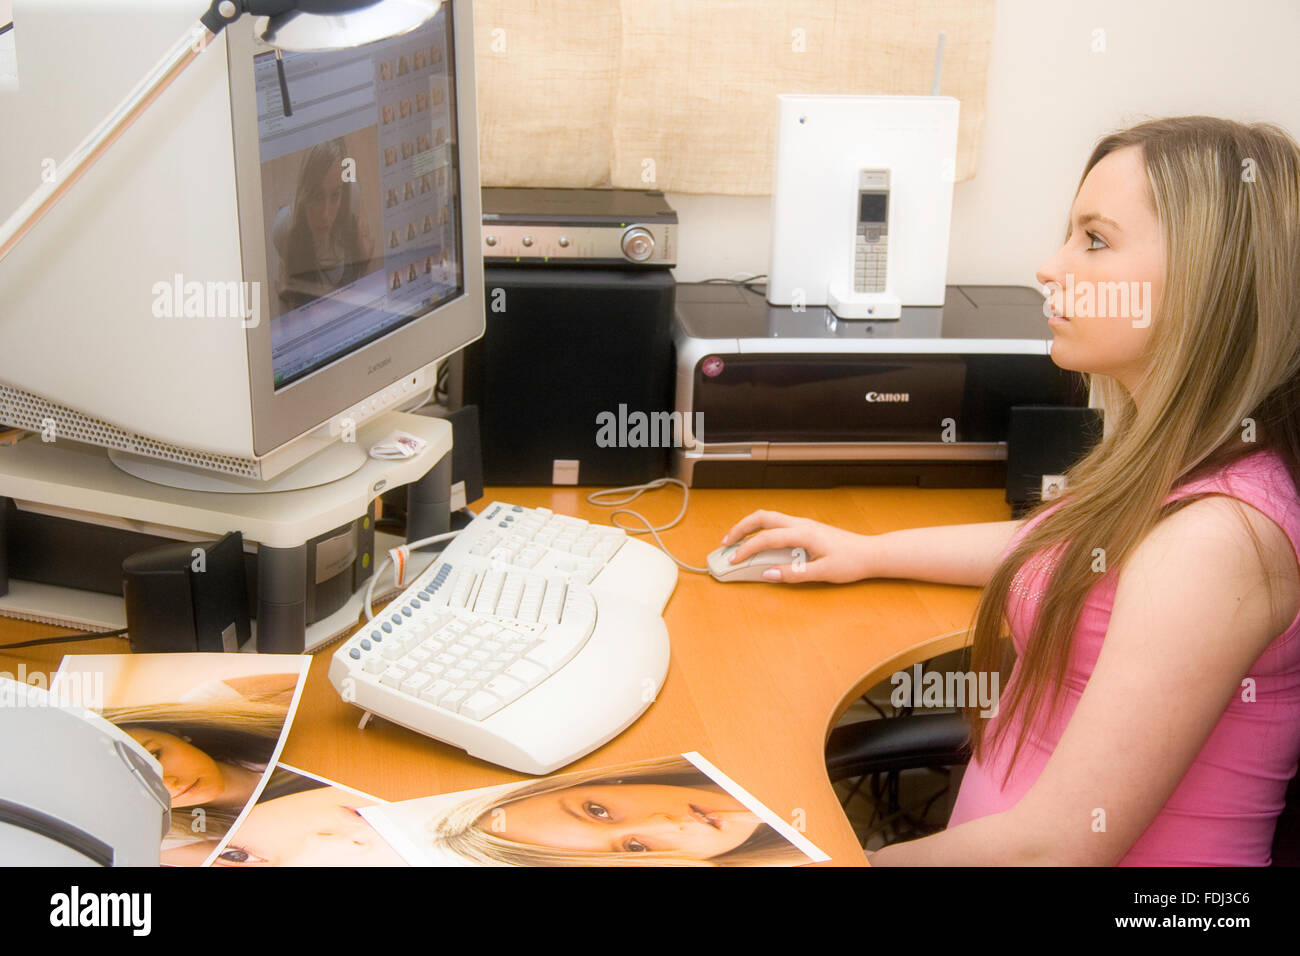 Blonde teenage girl with pink top on, sitting at computer desk looking at CTR monitor while using mouse. Photos Stock Photo